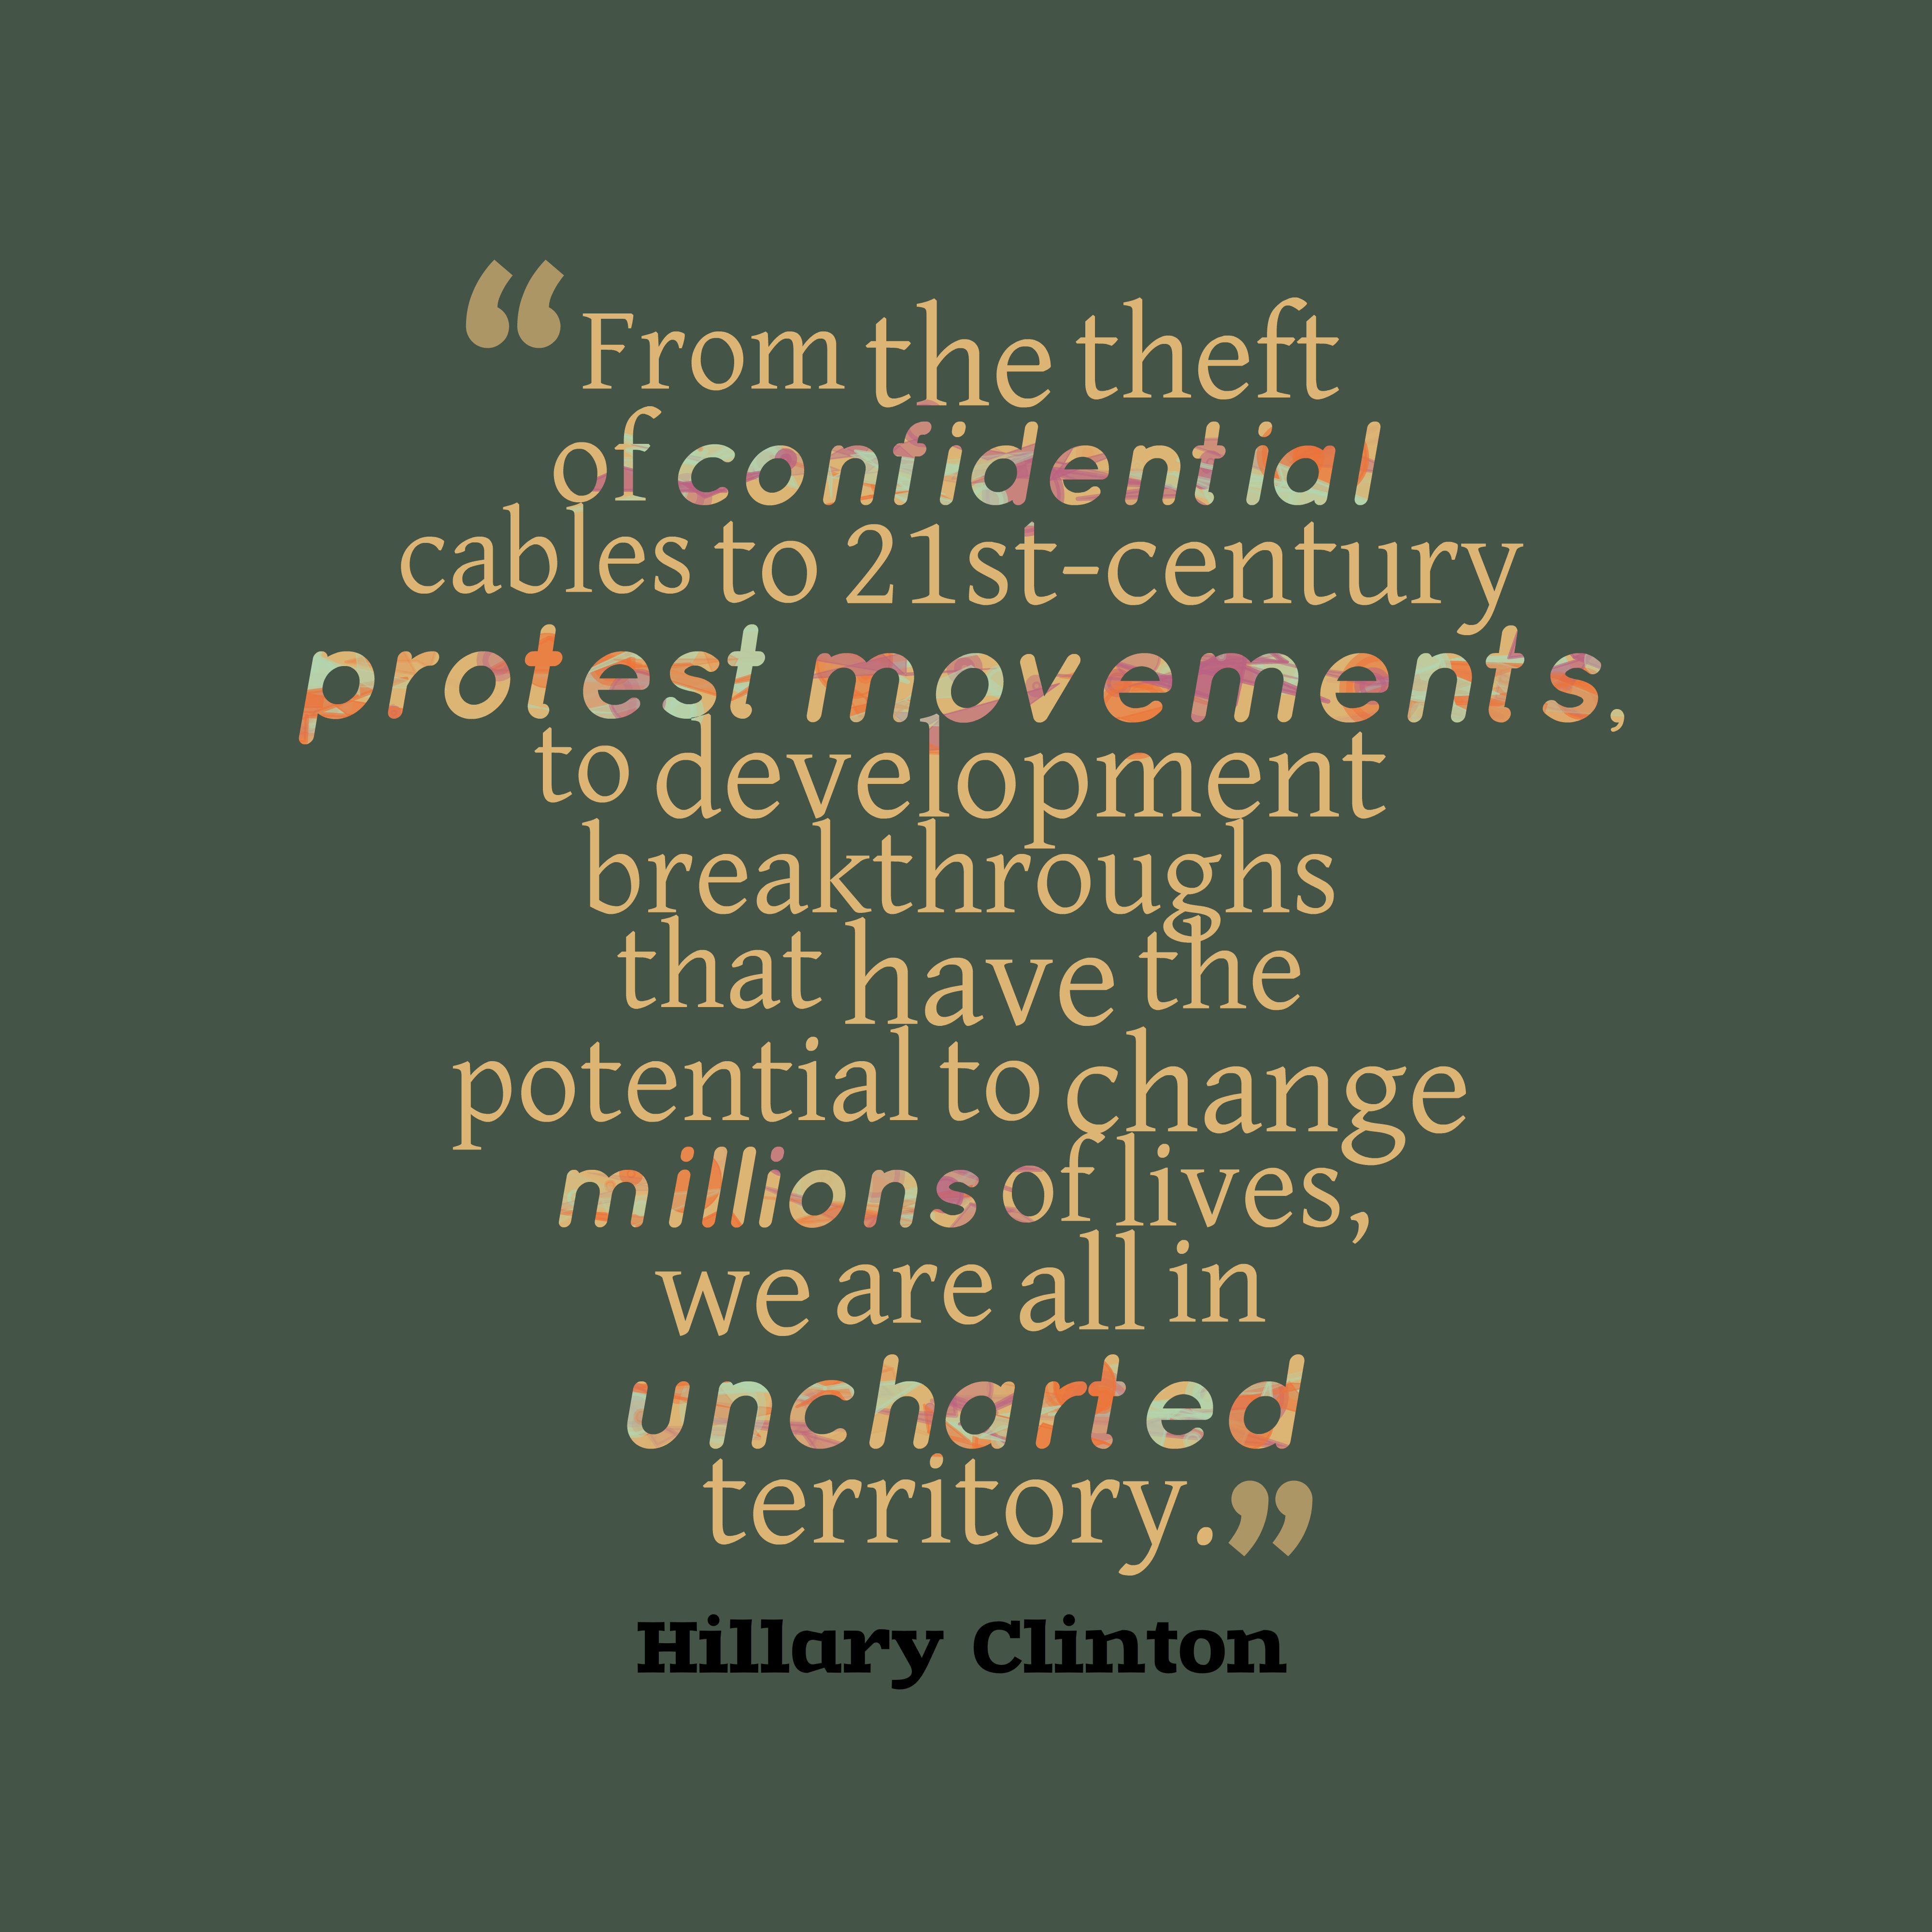 Quotes image of From the theft of confidential cables to 21st-century protest movements, to development breakthroughs that have the potential to change millions of lives, we are all in uncharted territory.